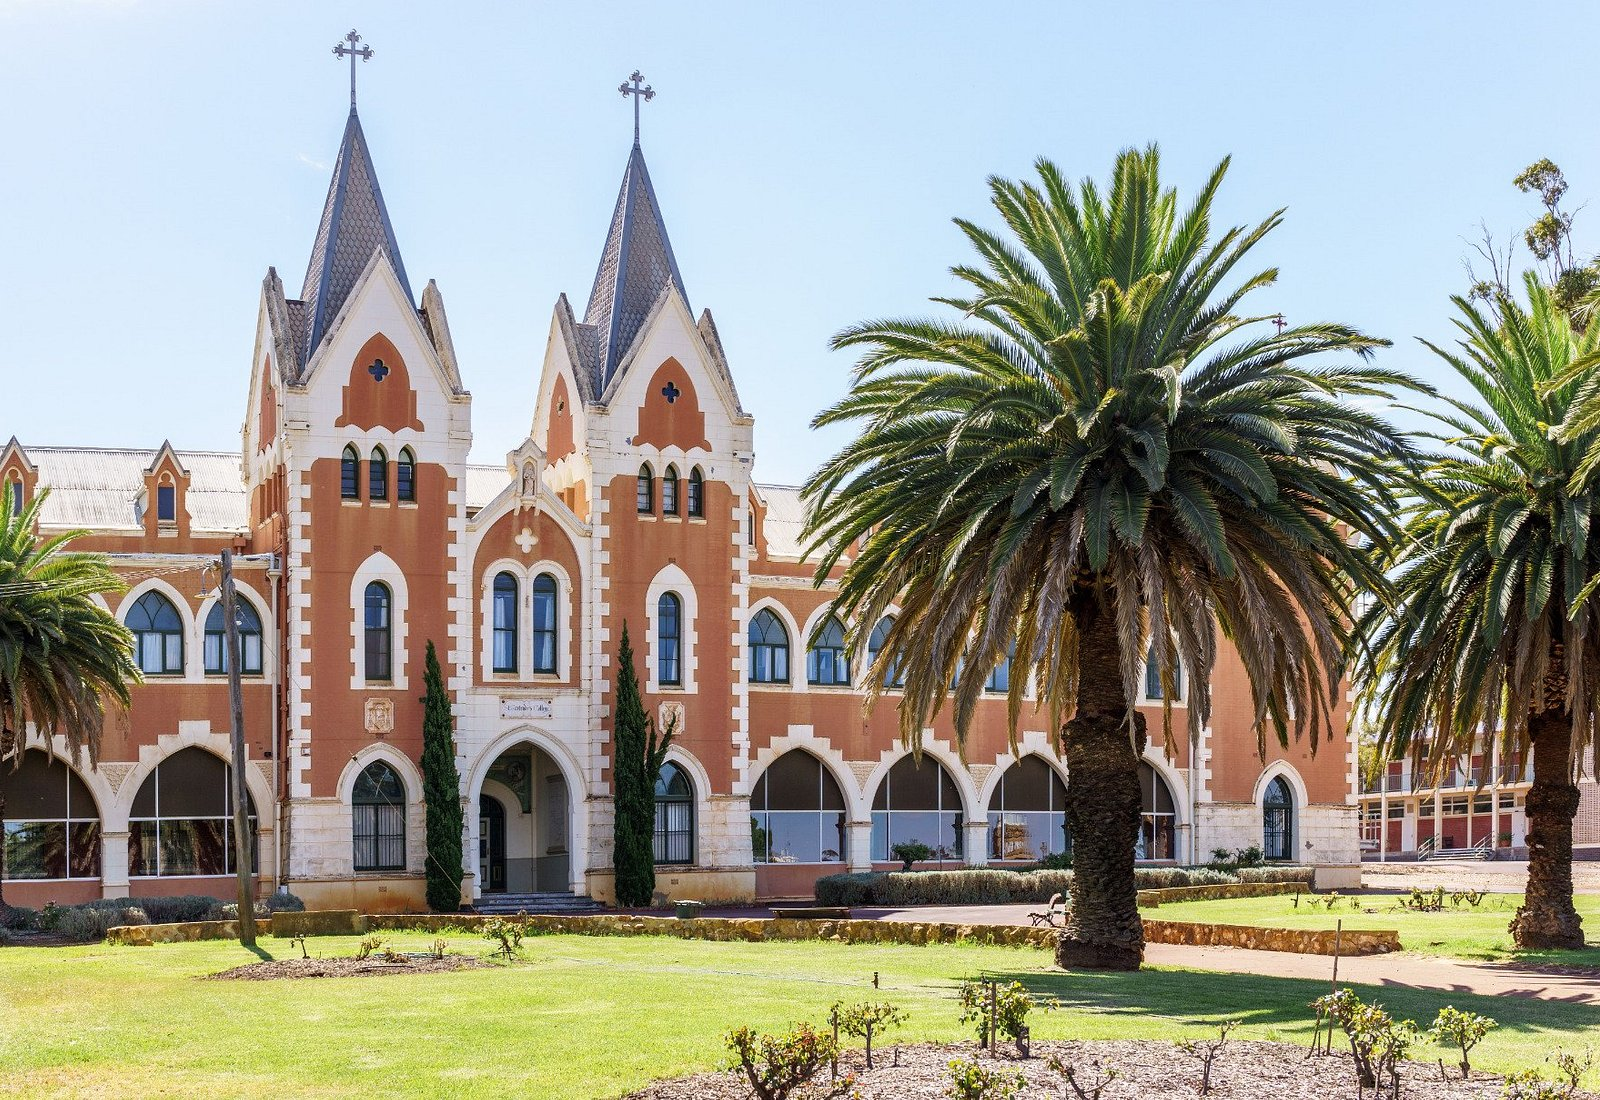 St Gertrude's College, New Norcia